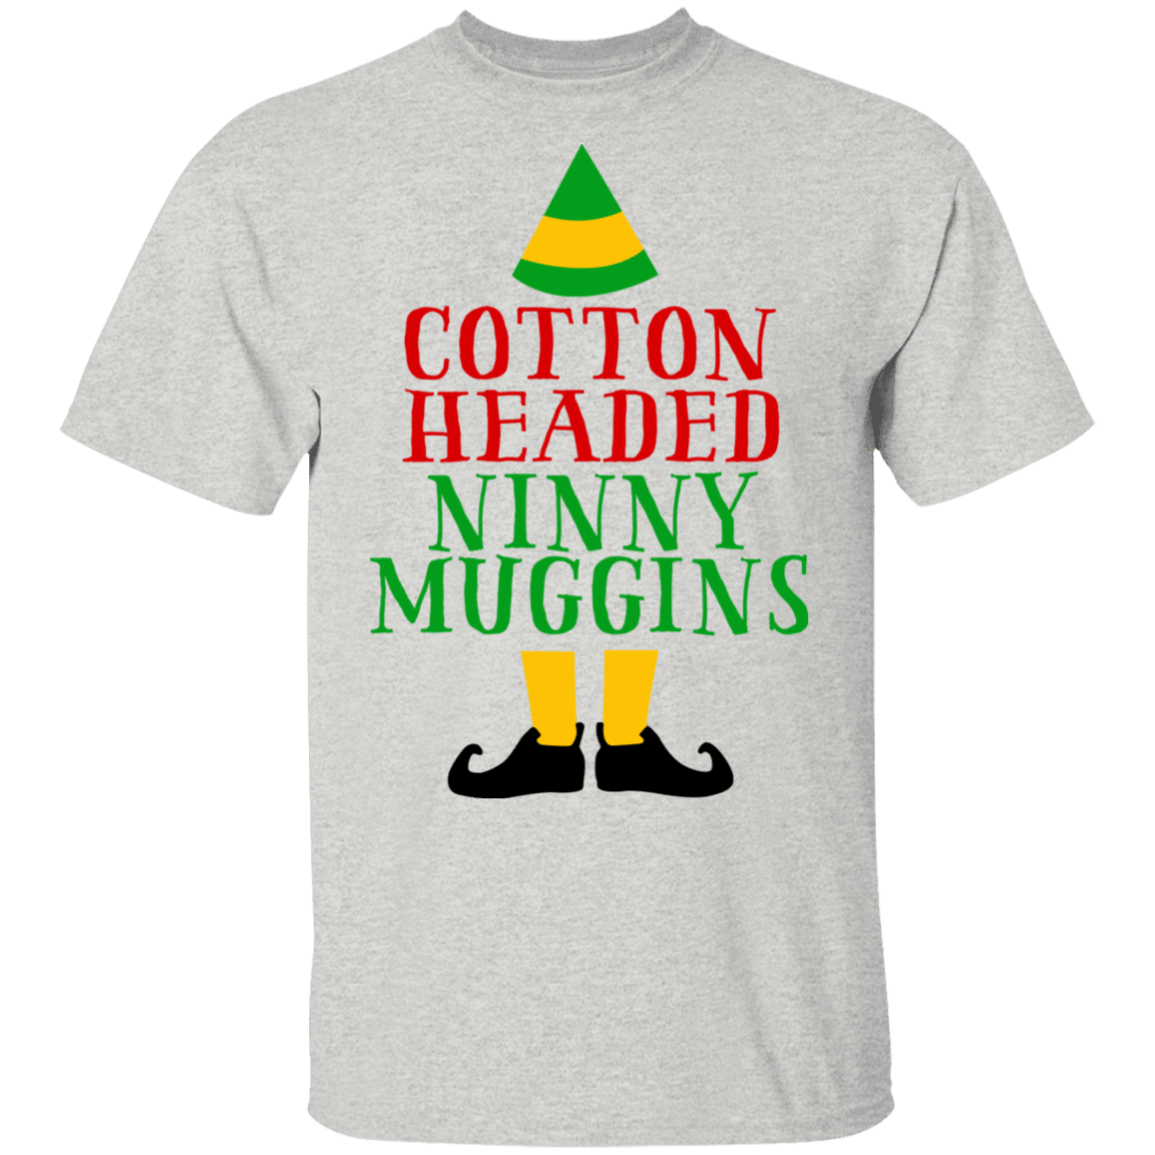 Cotton Headed Ninny Muggins Elf T-Shirts, Hoodies 1049-9952-82220530-48184 - Tee Ript